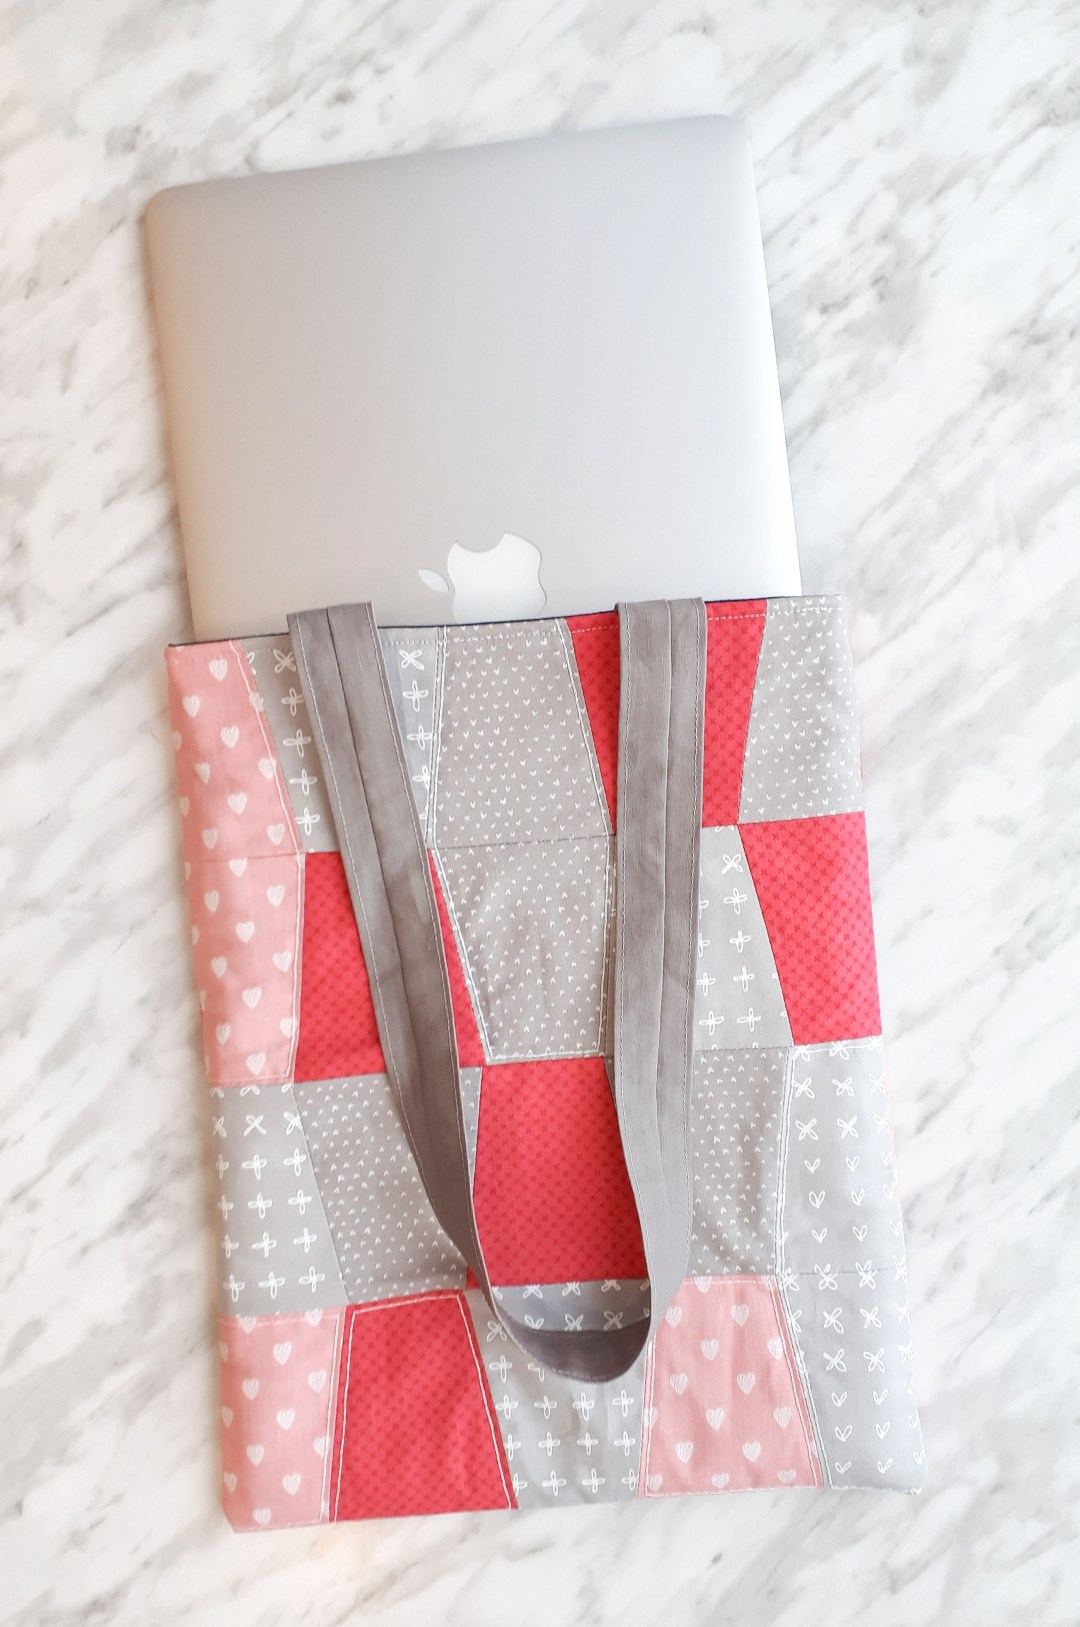 Sew up a cute quilted laptop sleeve to tote around your computer in style!